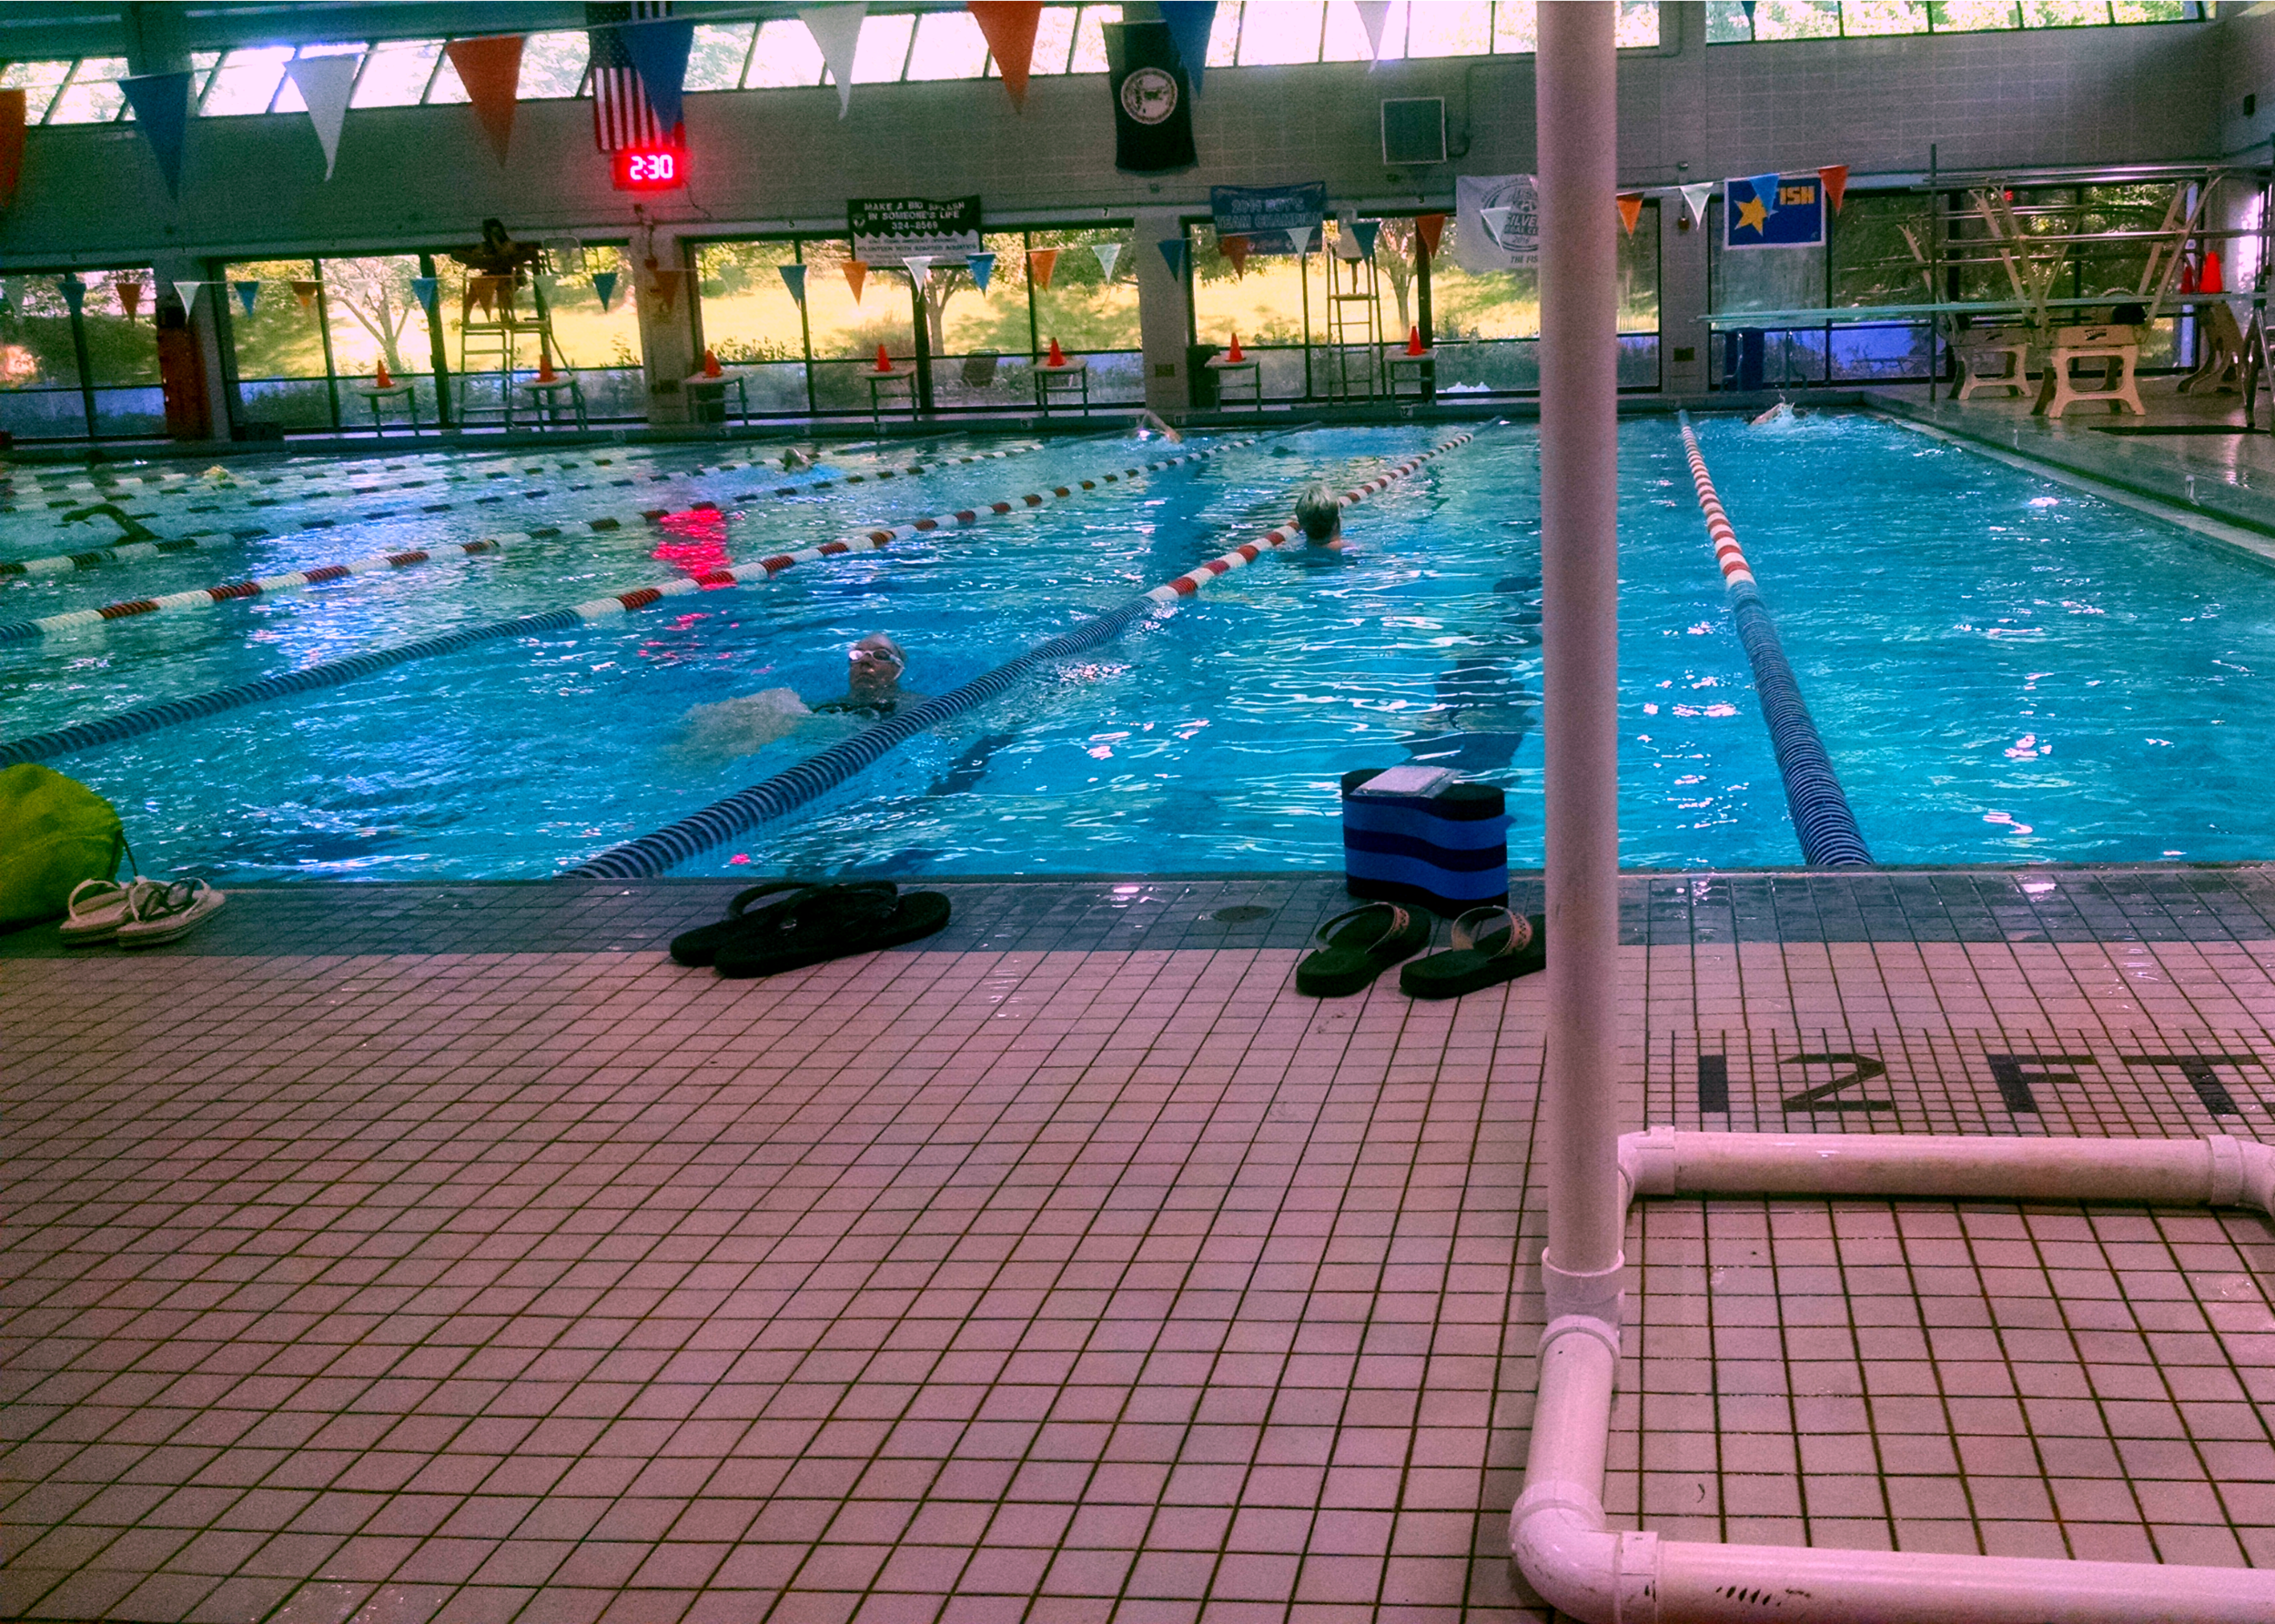 The pool is back to being my happy place.  Sometimes less pressure is good!